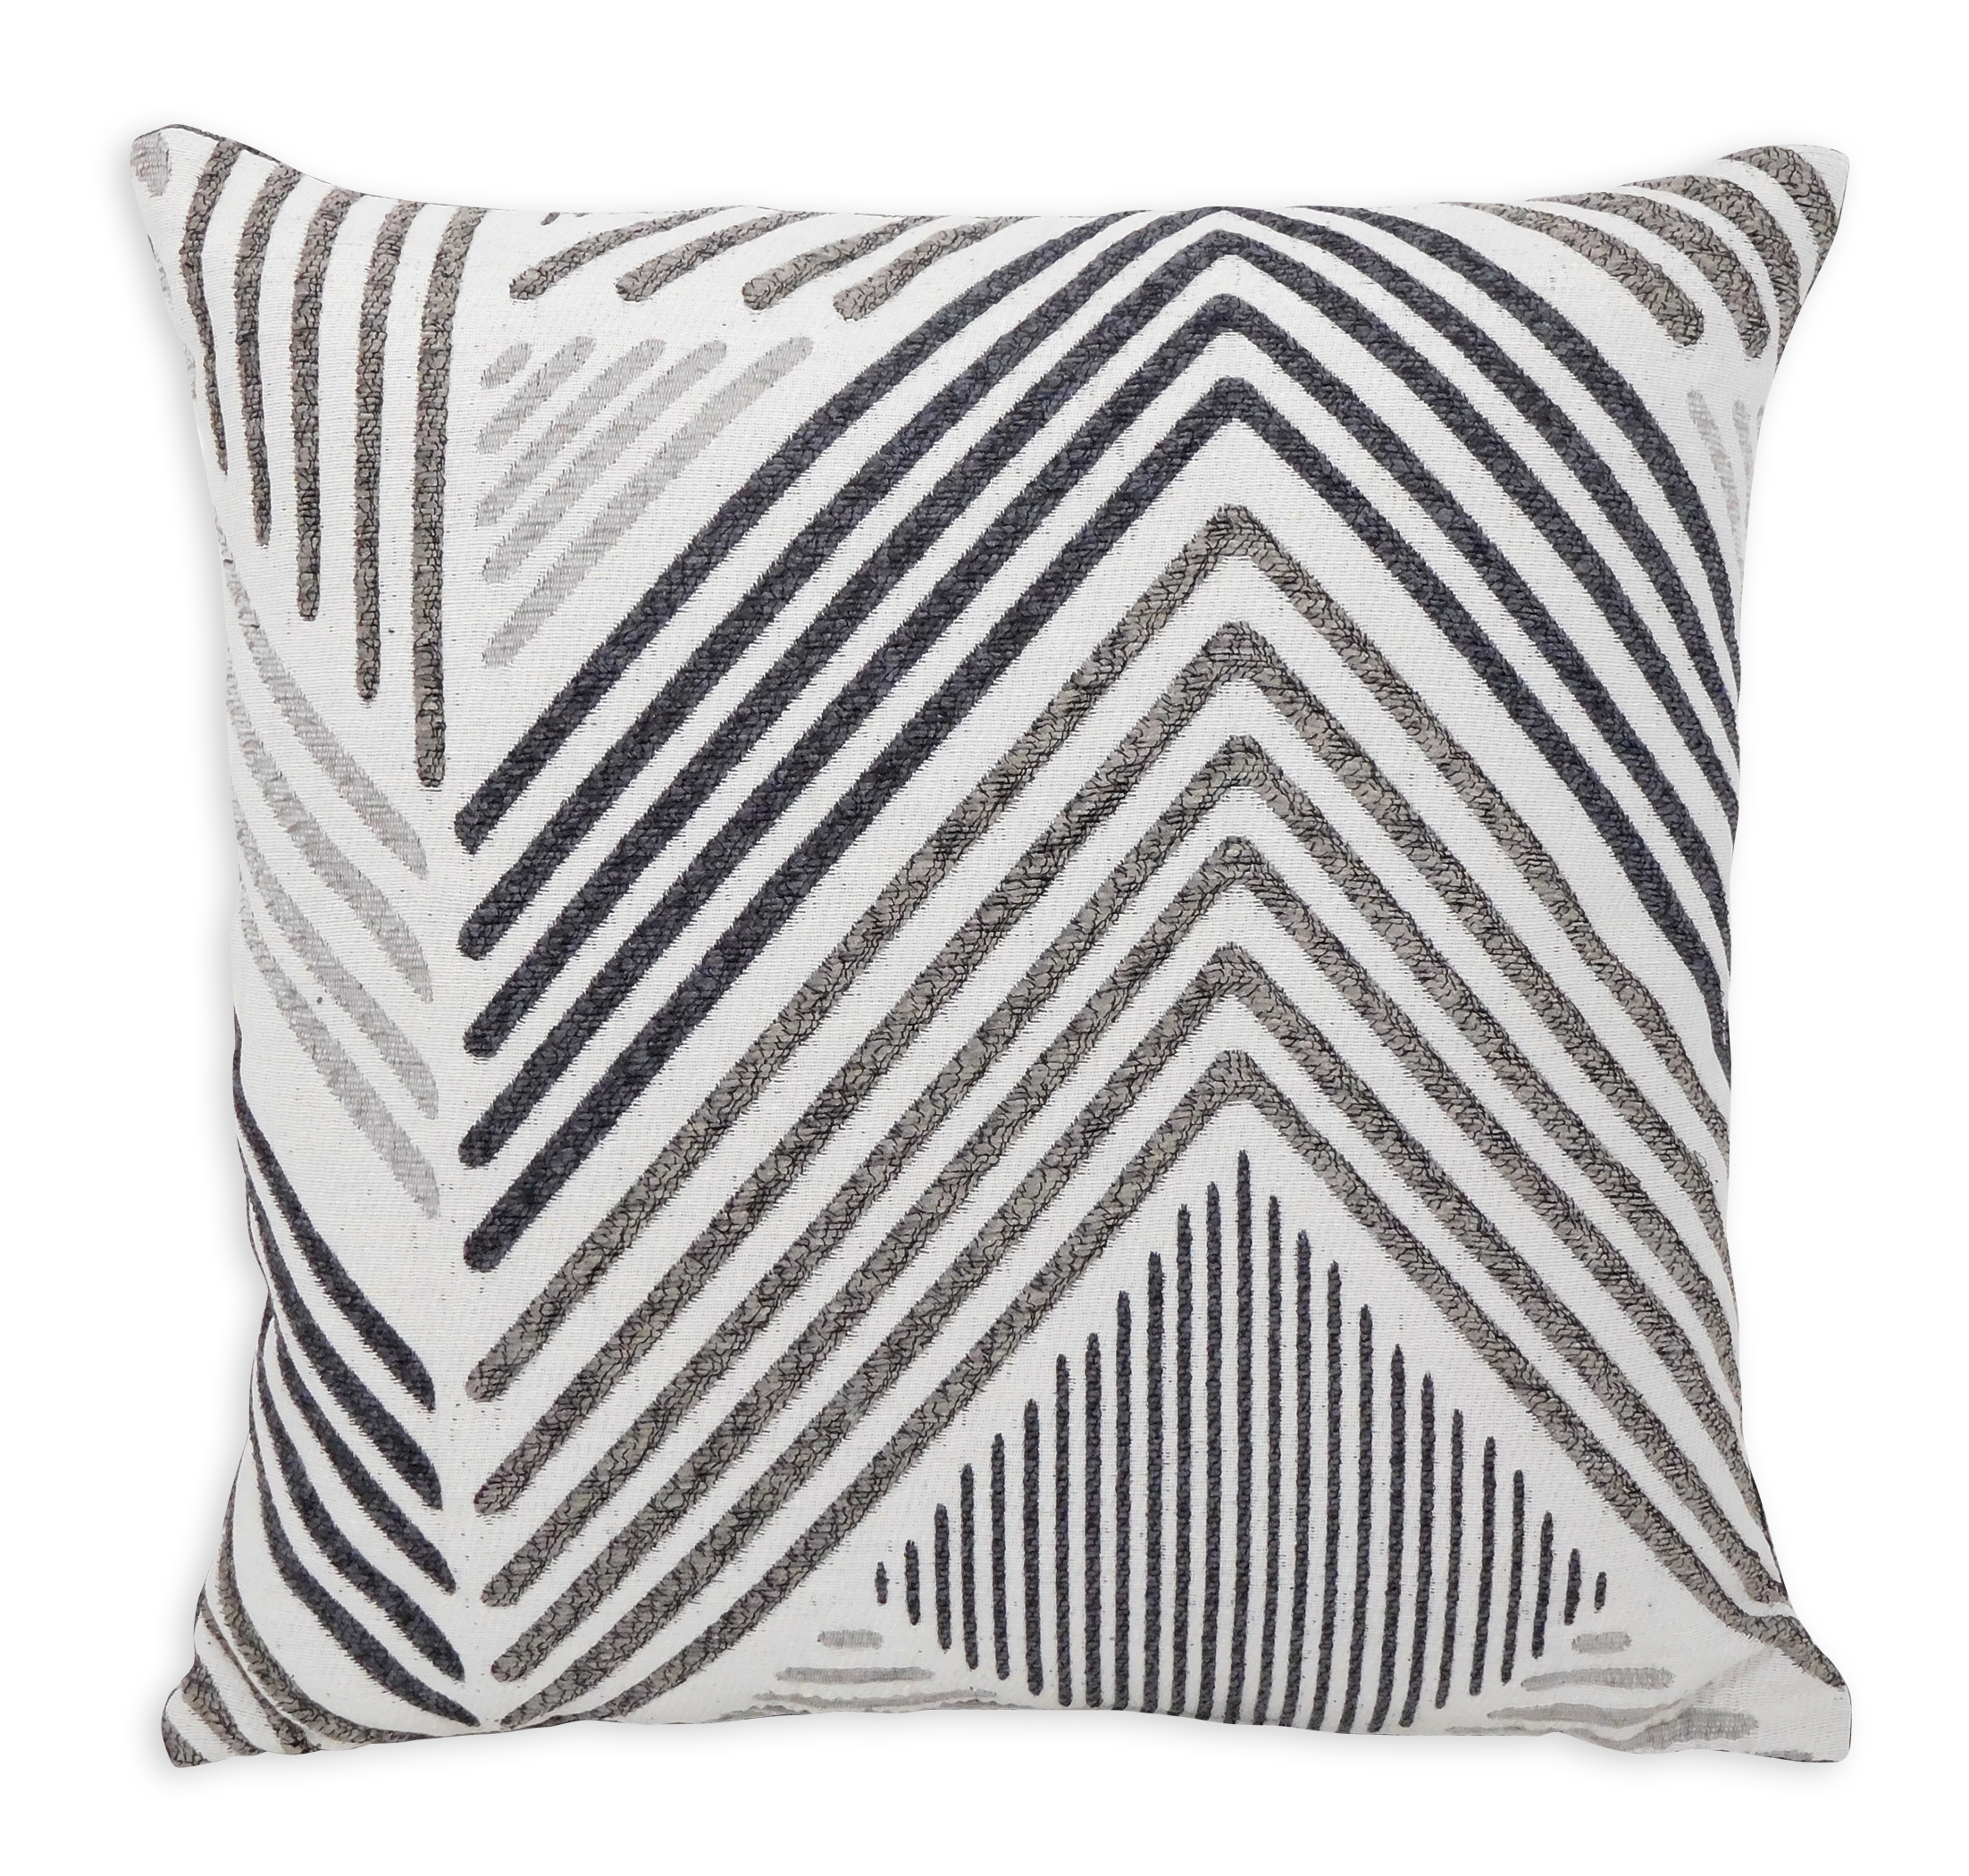 "Better Homes & Gardens Chevron Decorative Throw Pillow, 18"" x 18"""